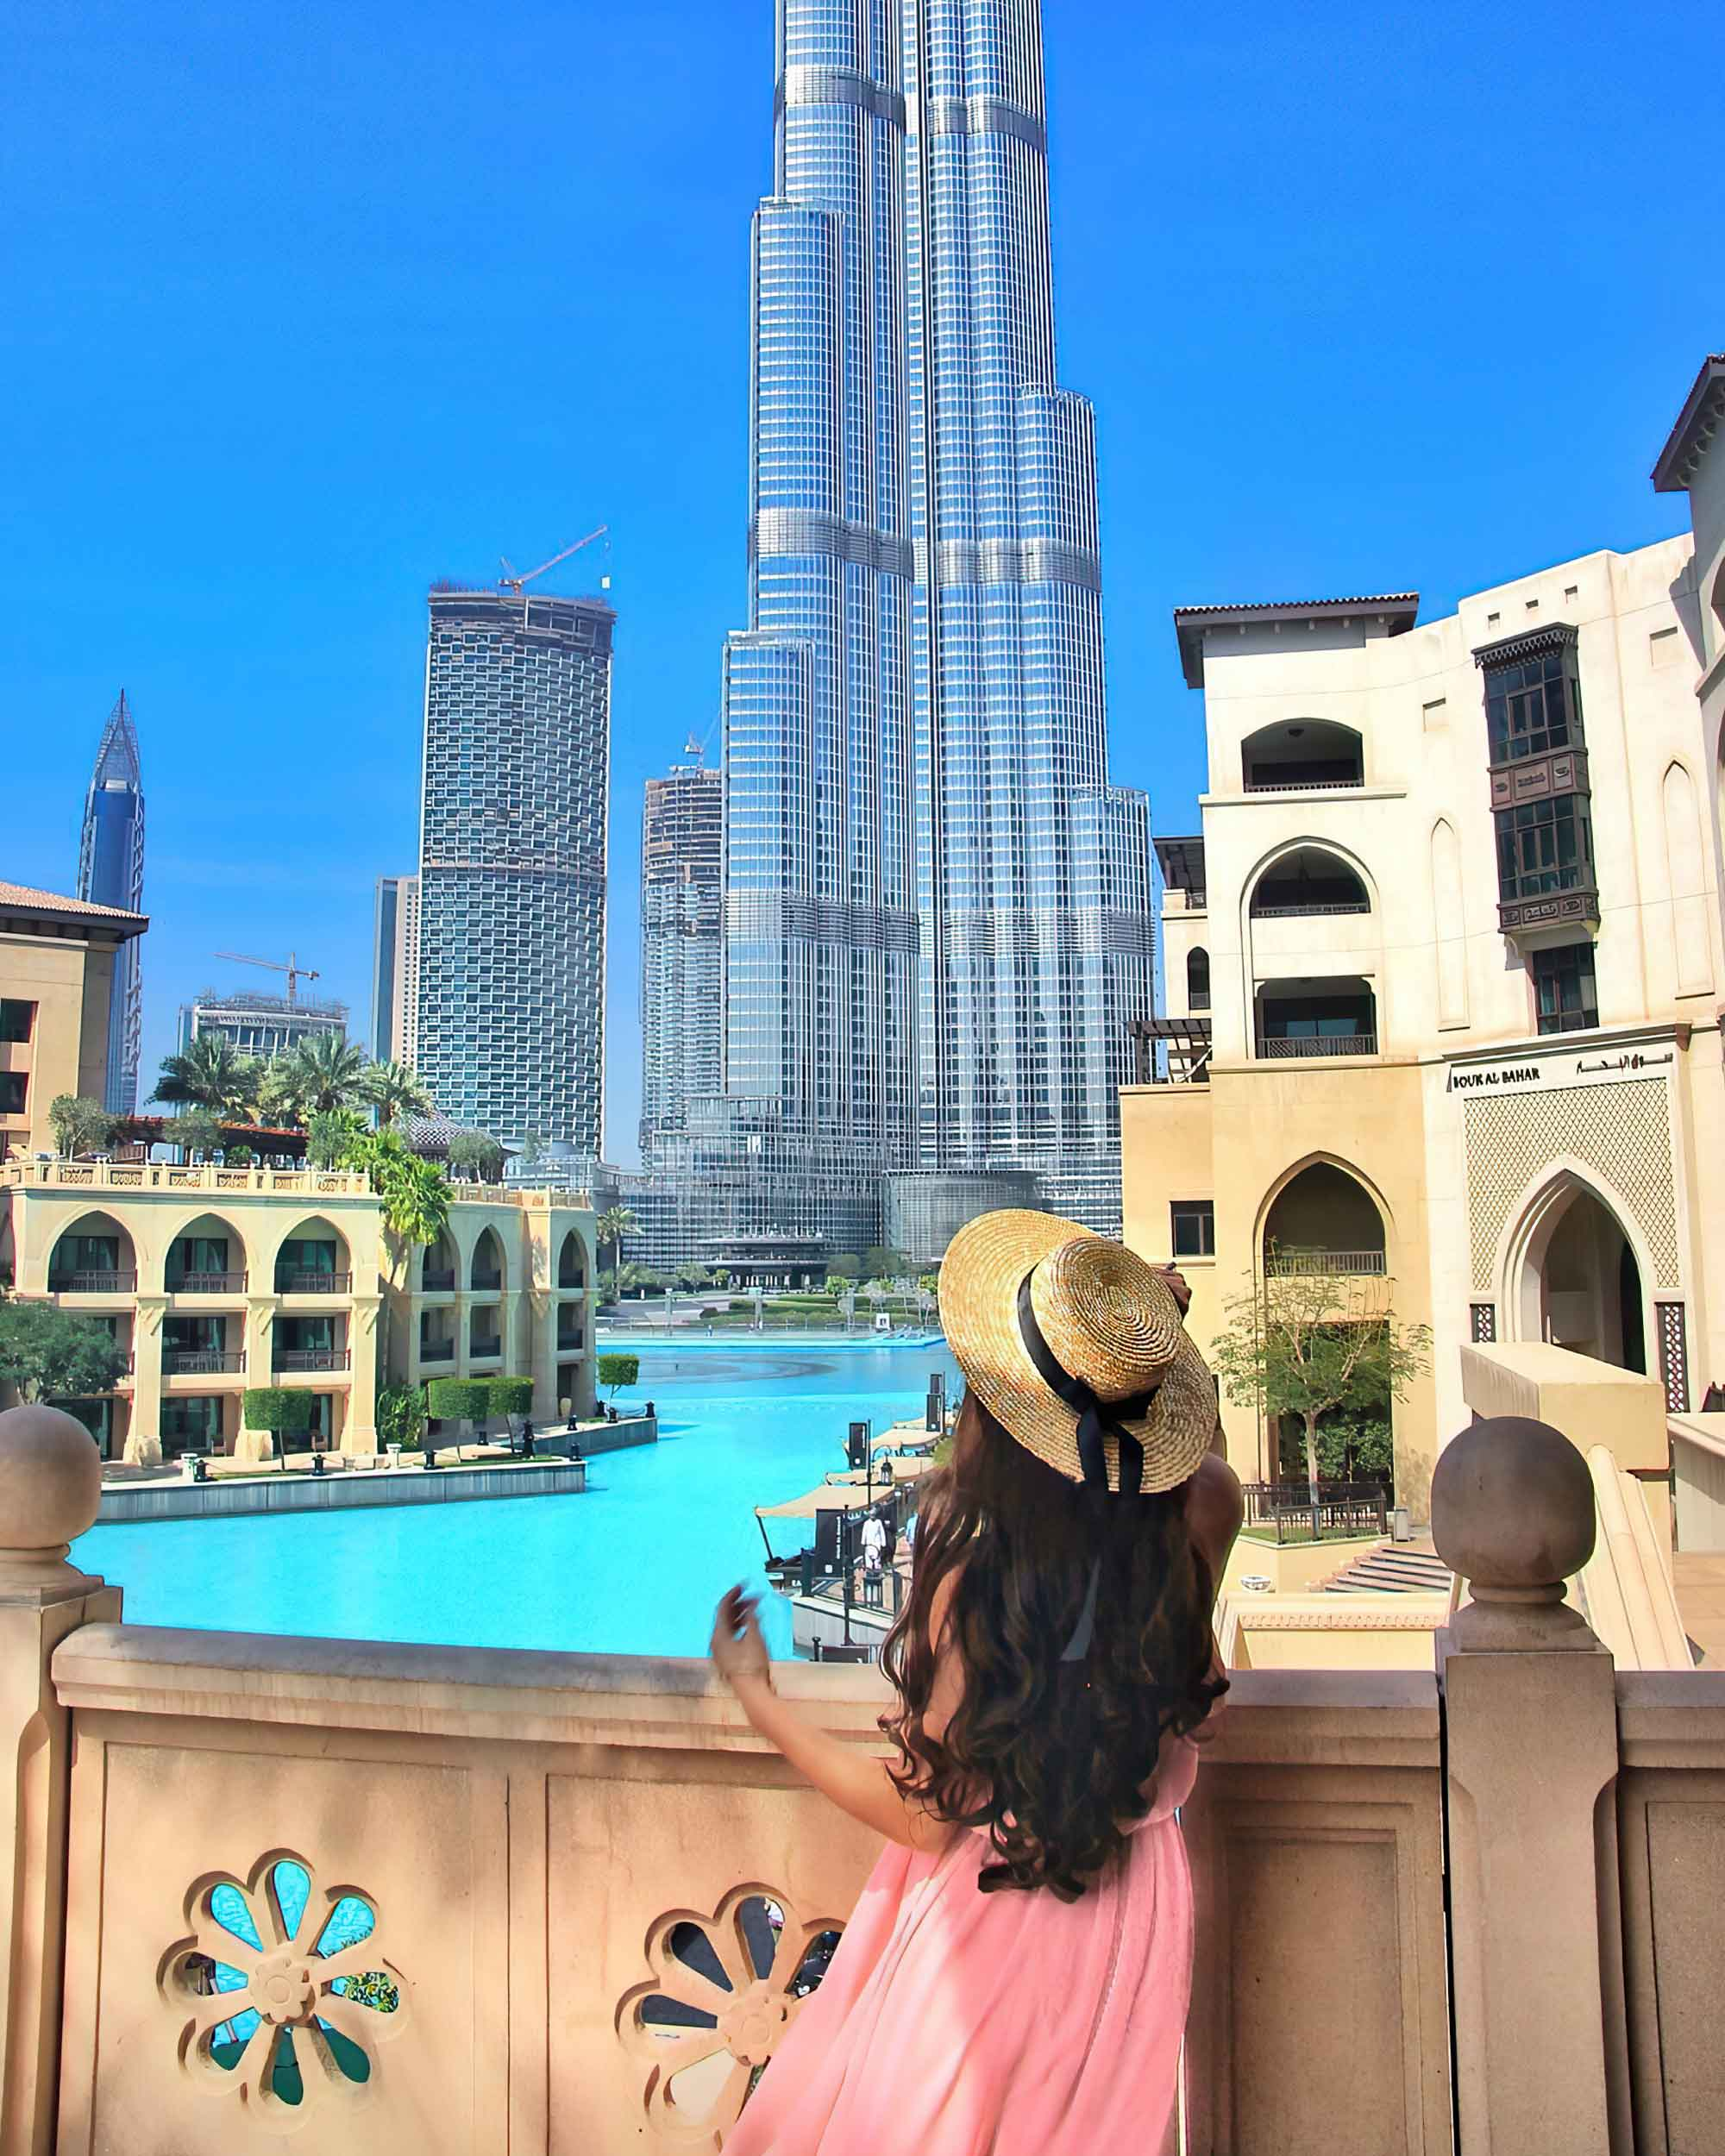 A girl in a pink dress and straw hat views the Burj Khalifa from across the decorative pools.